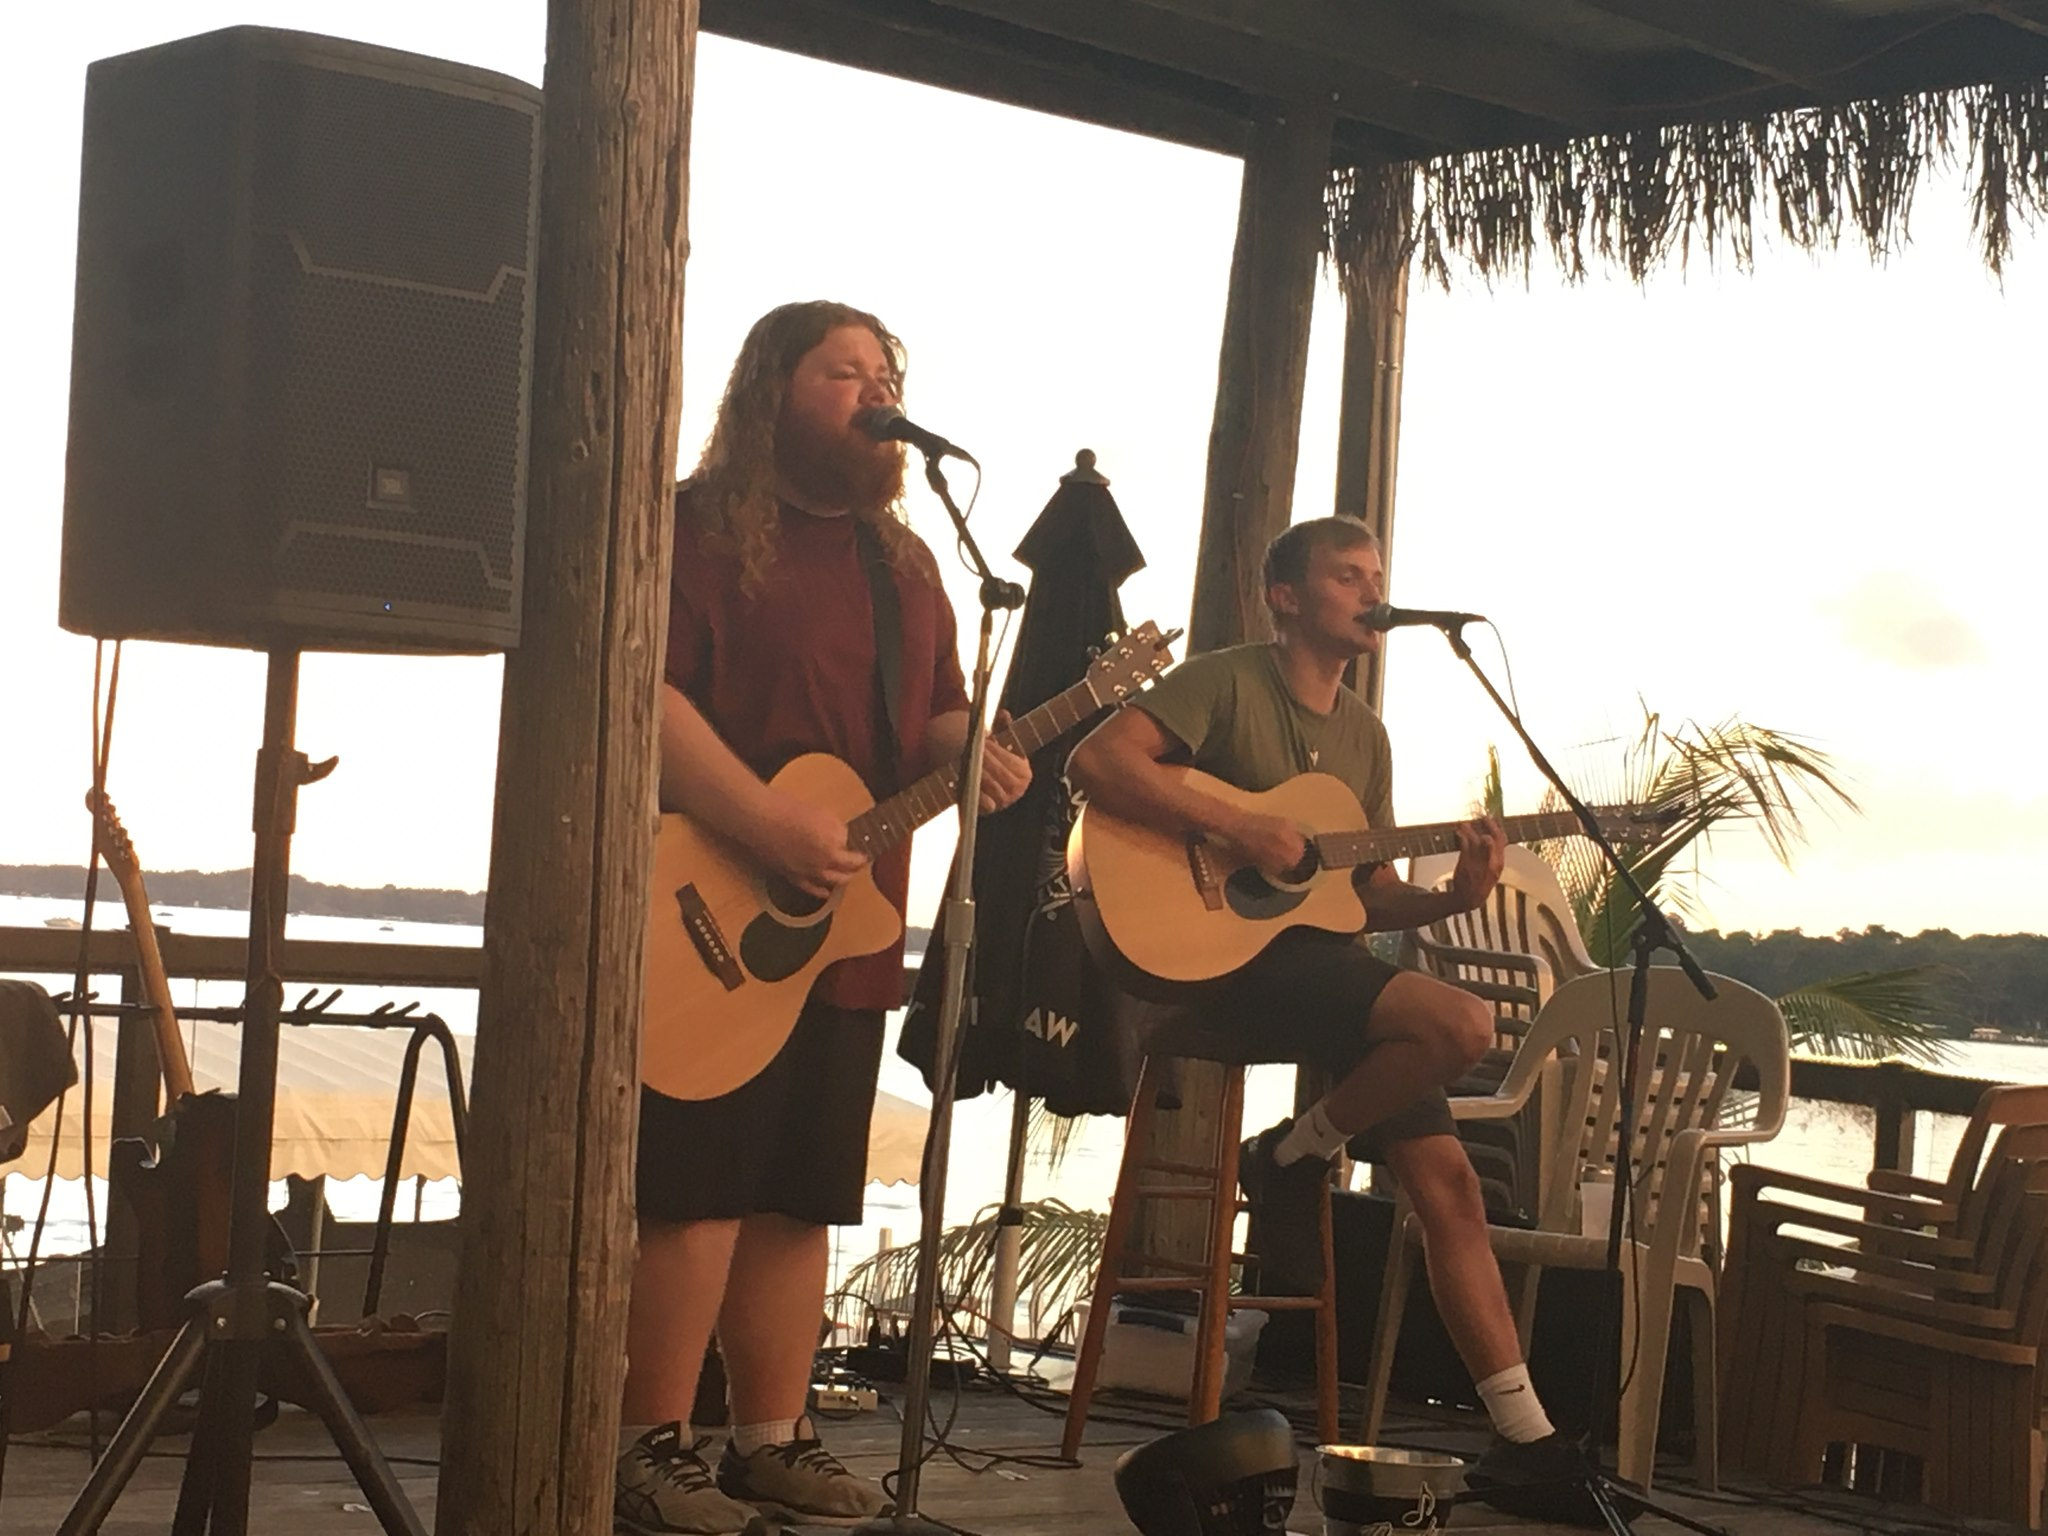 Photo of two people outside in a casual setting playing guitars and singing on microphones.